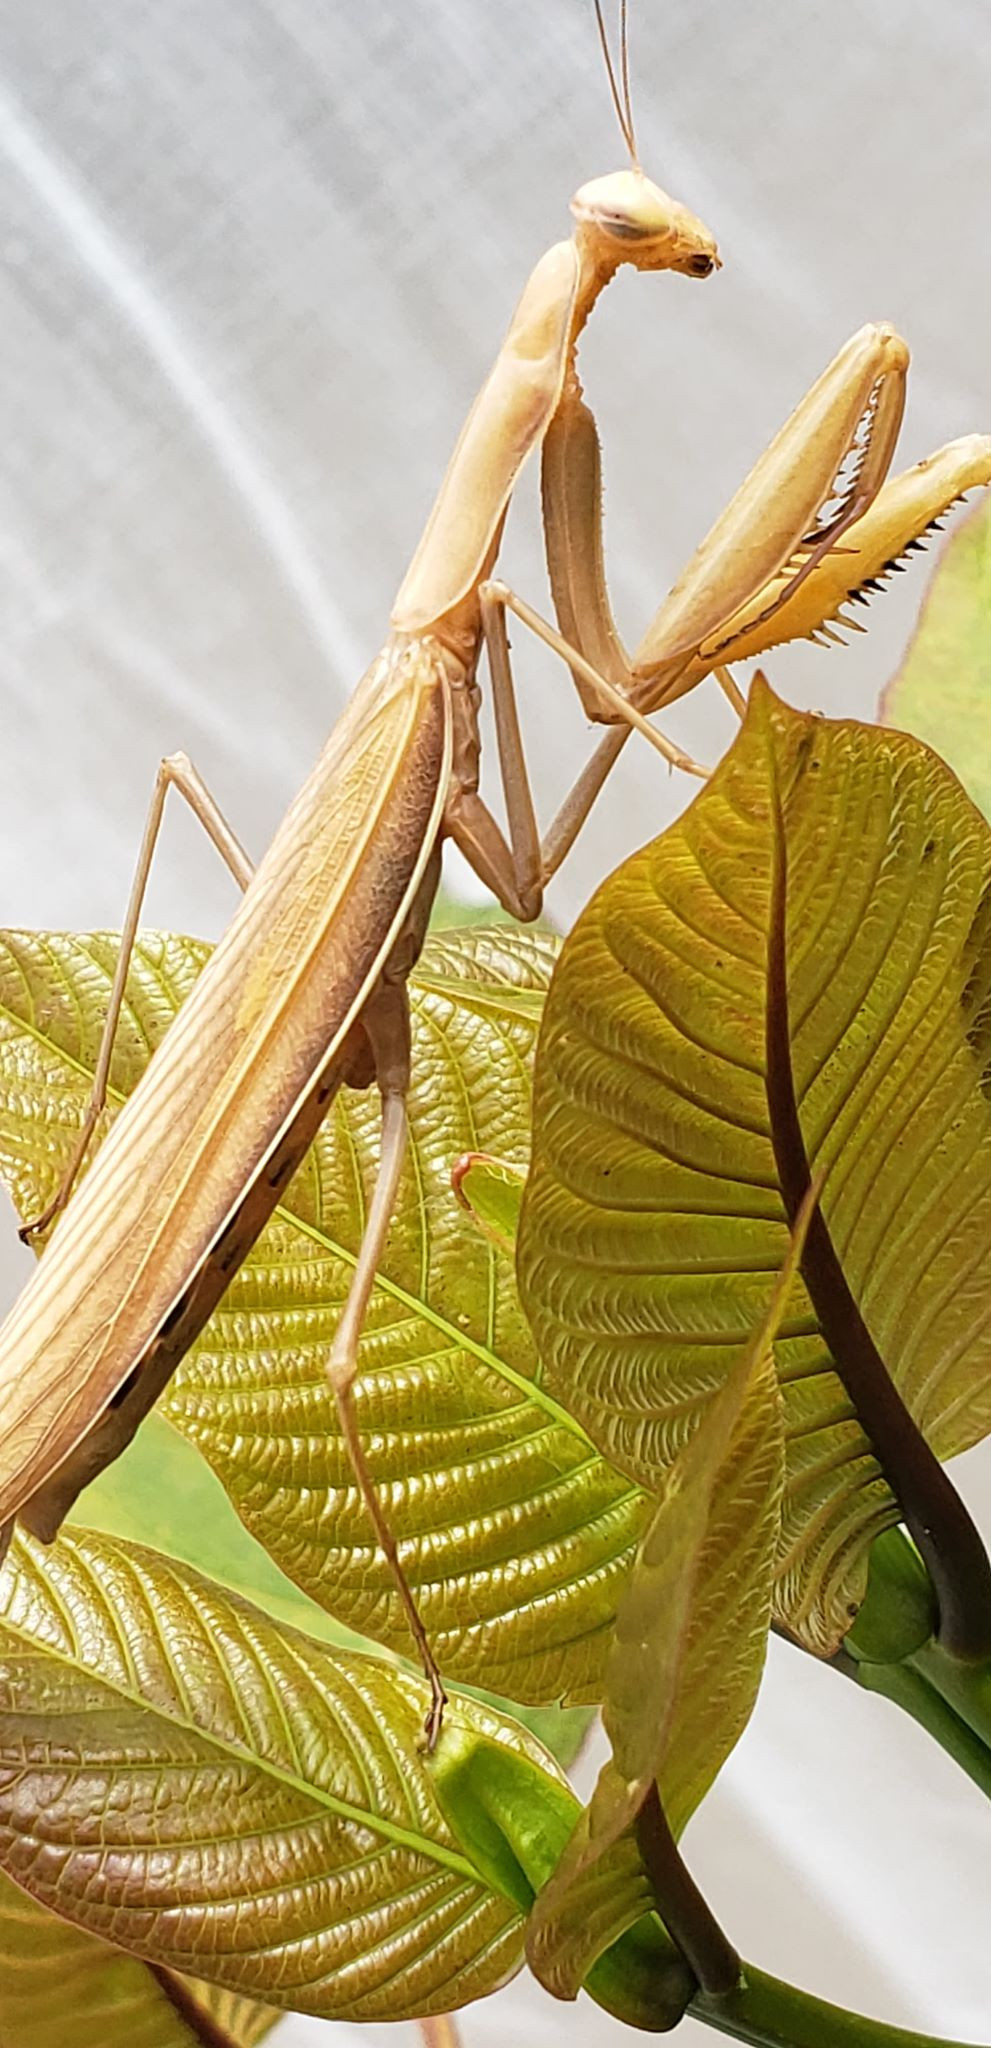 A hungry mantis sits atop kratom leaves waiting for her next meal.